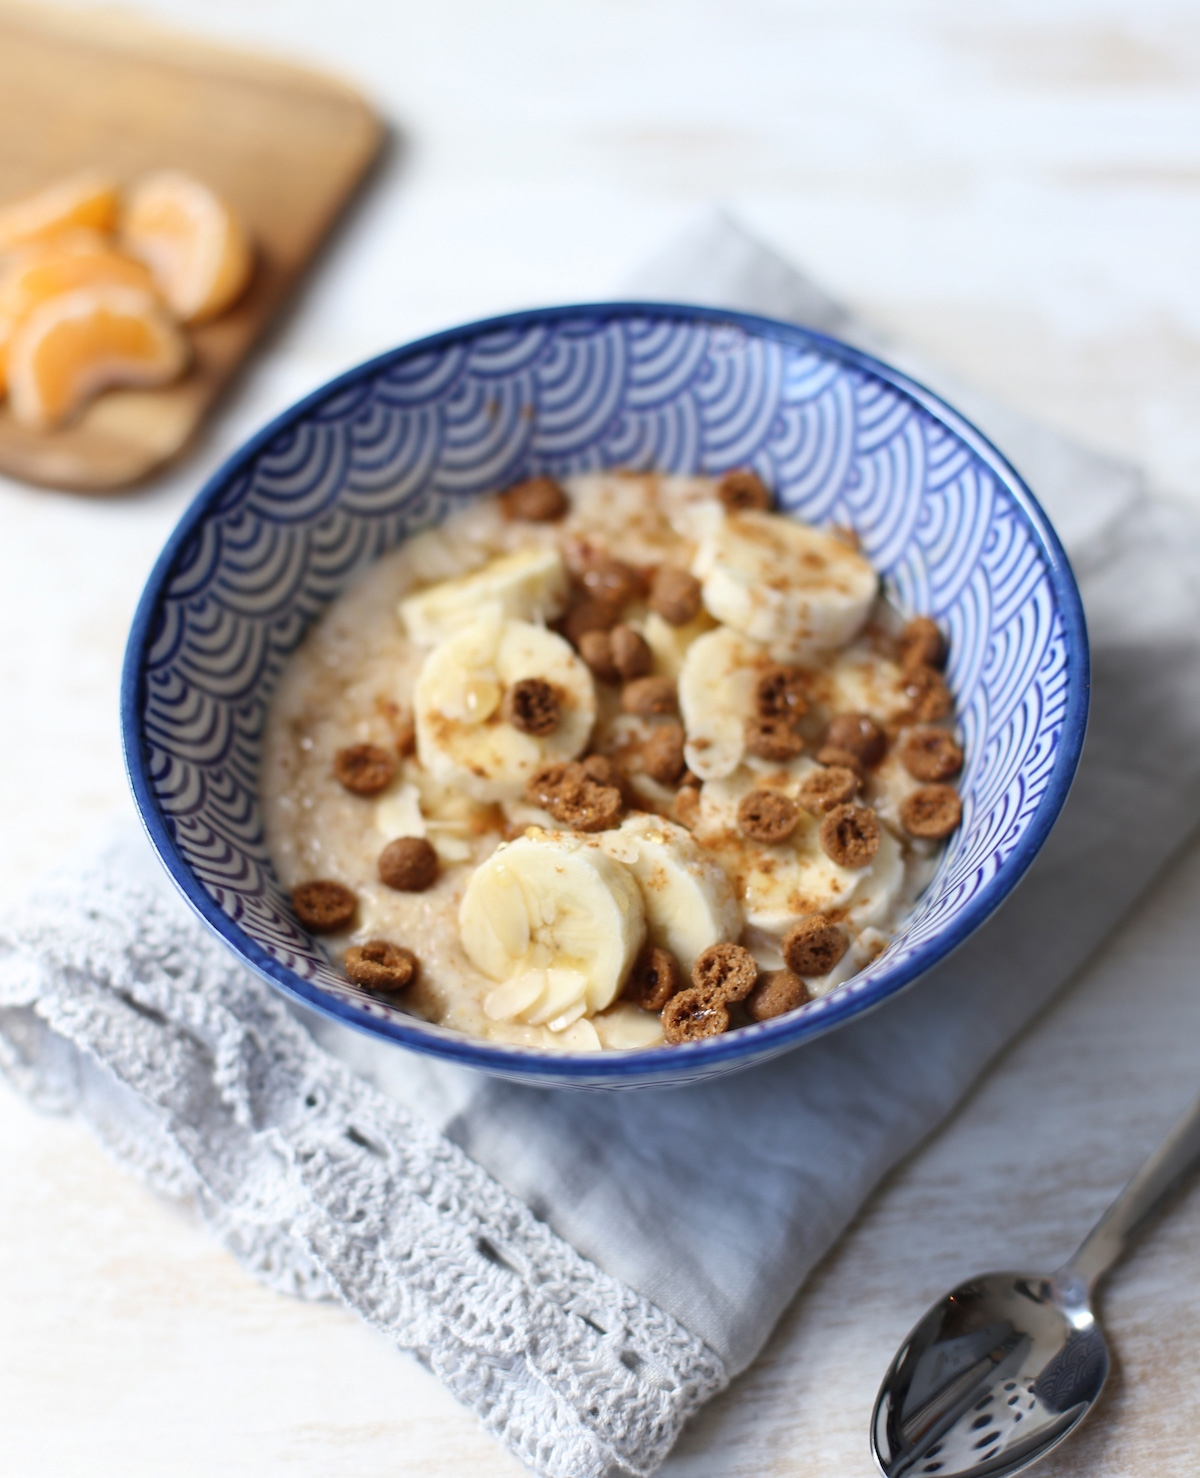 Havermout met speculaas